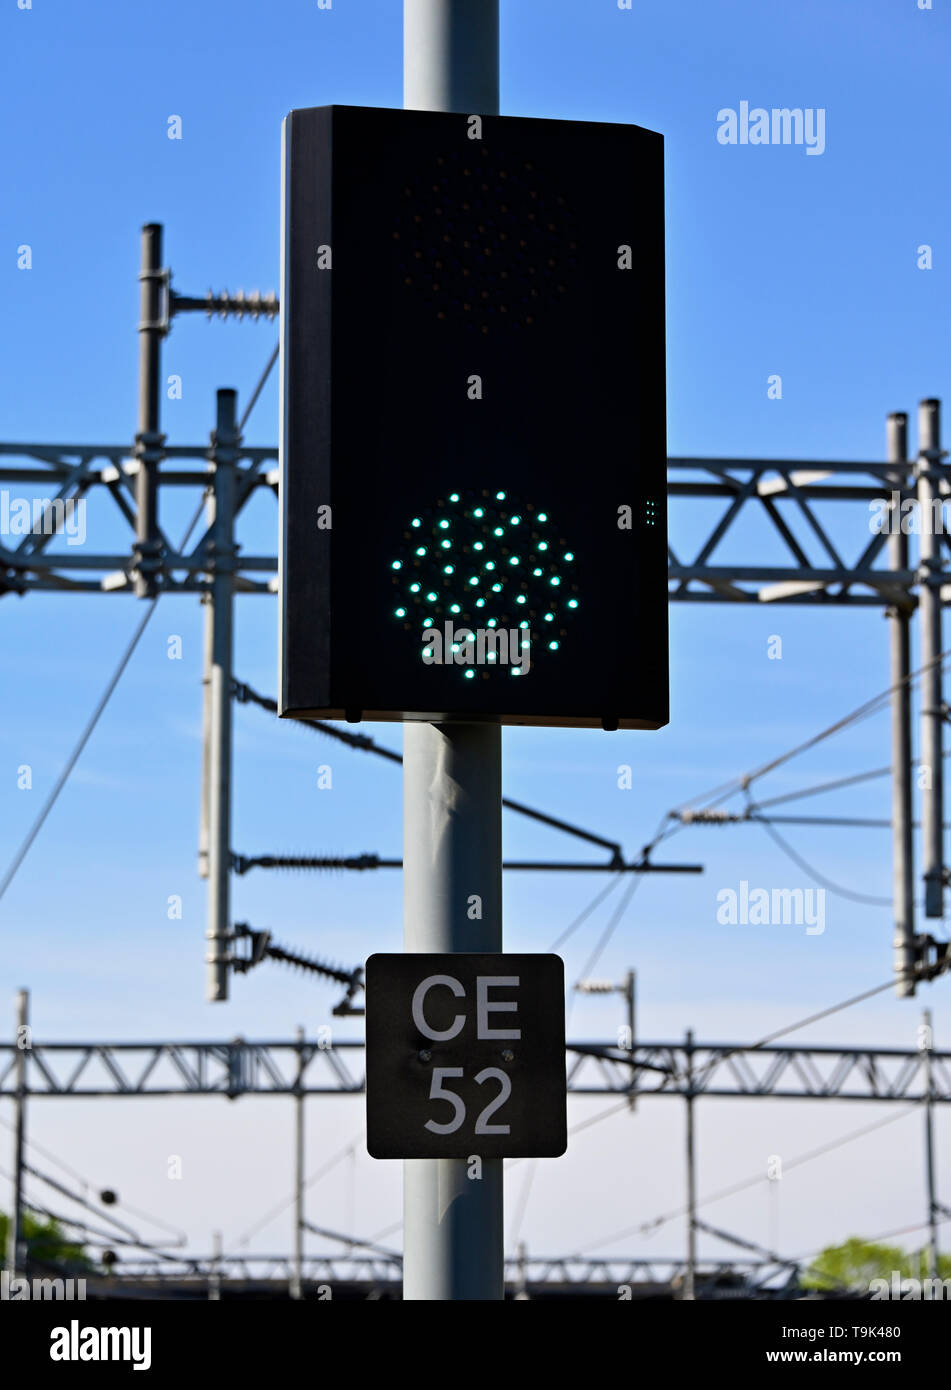 united-kingdom-railway-lineside-colour-light-signal-green-clear-the-train-may-proceed-subject-to-any-speed-restrictions-applying-to-the-section-T9K480.jpg